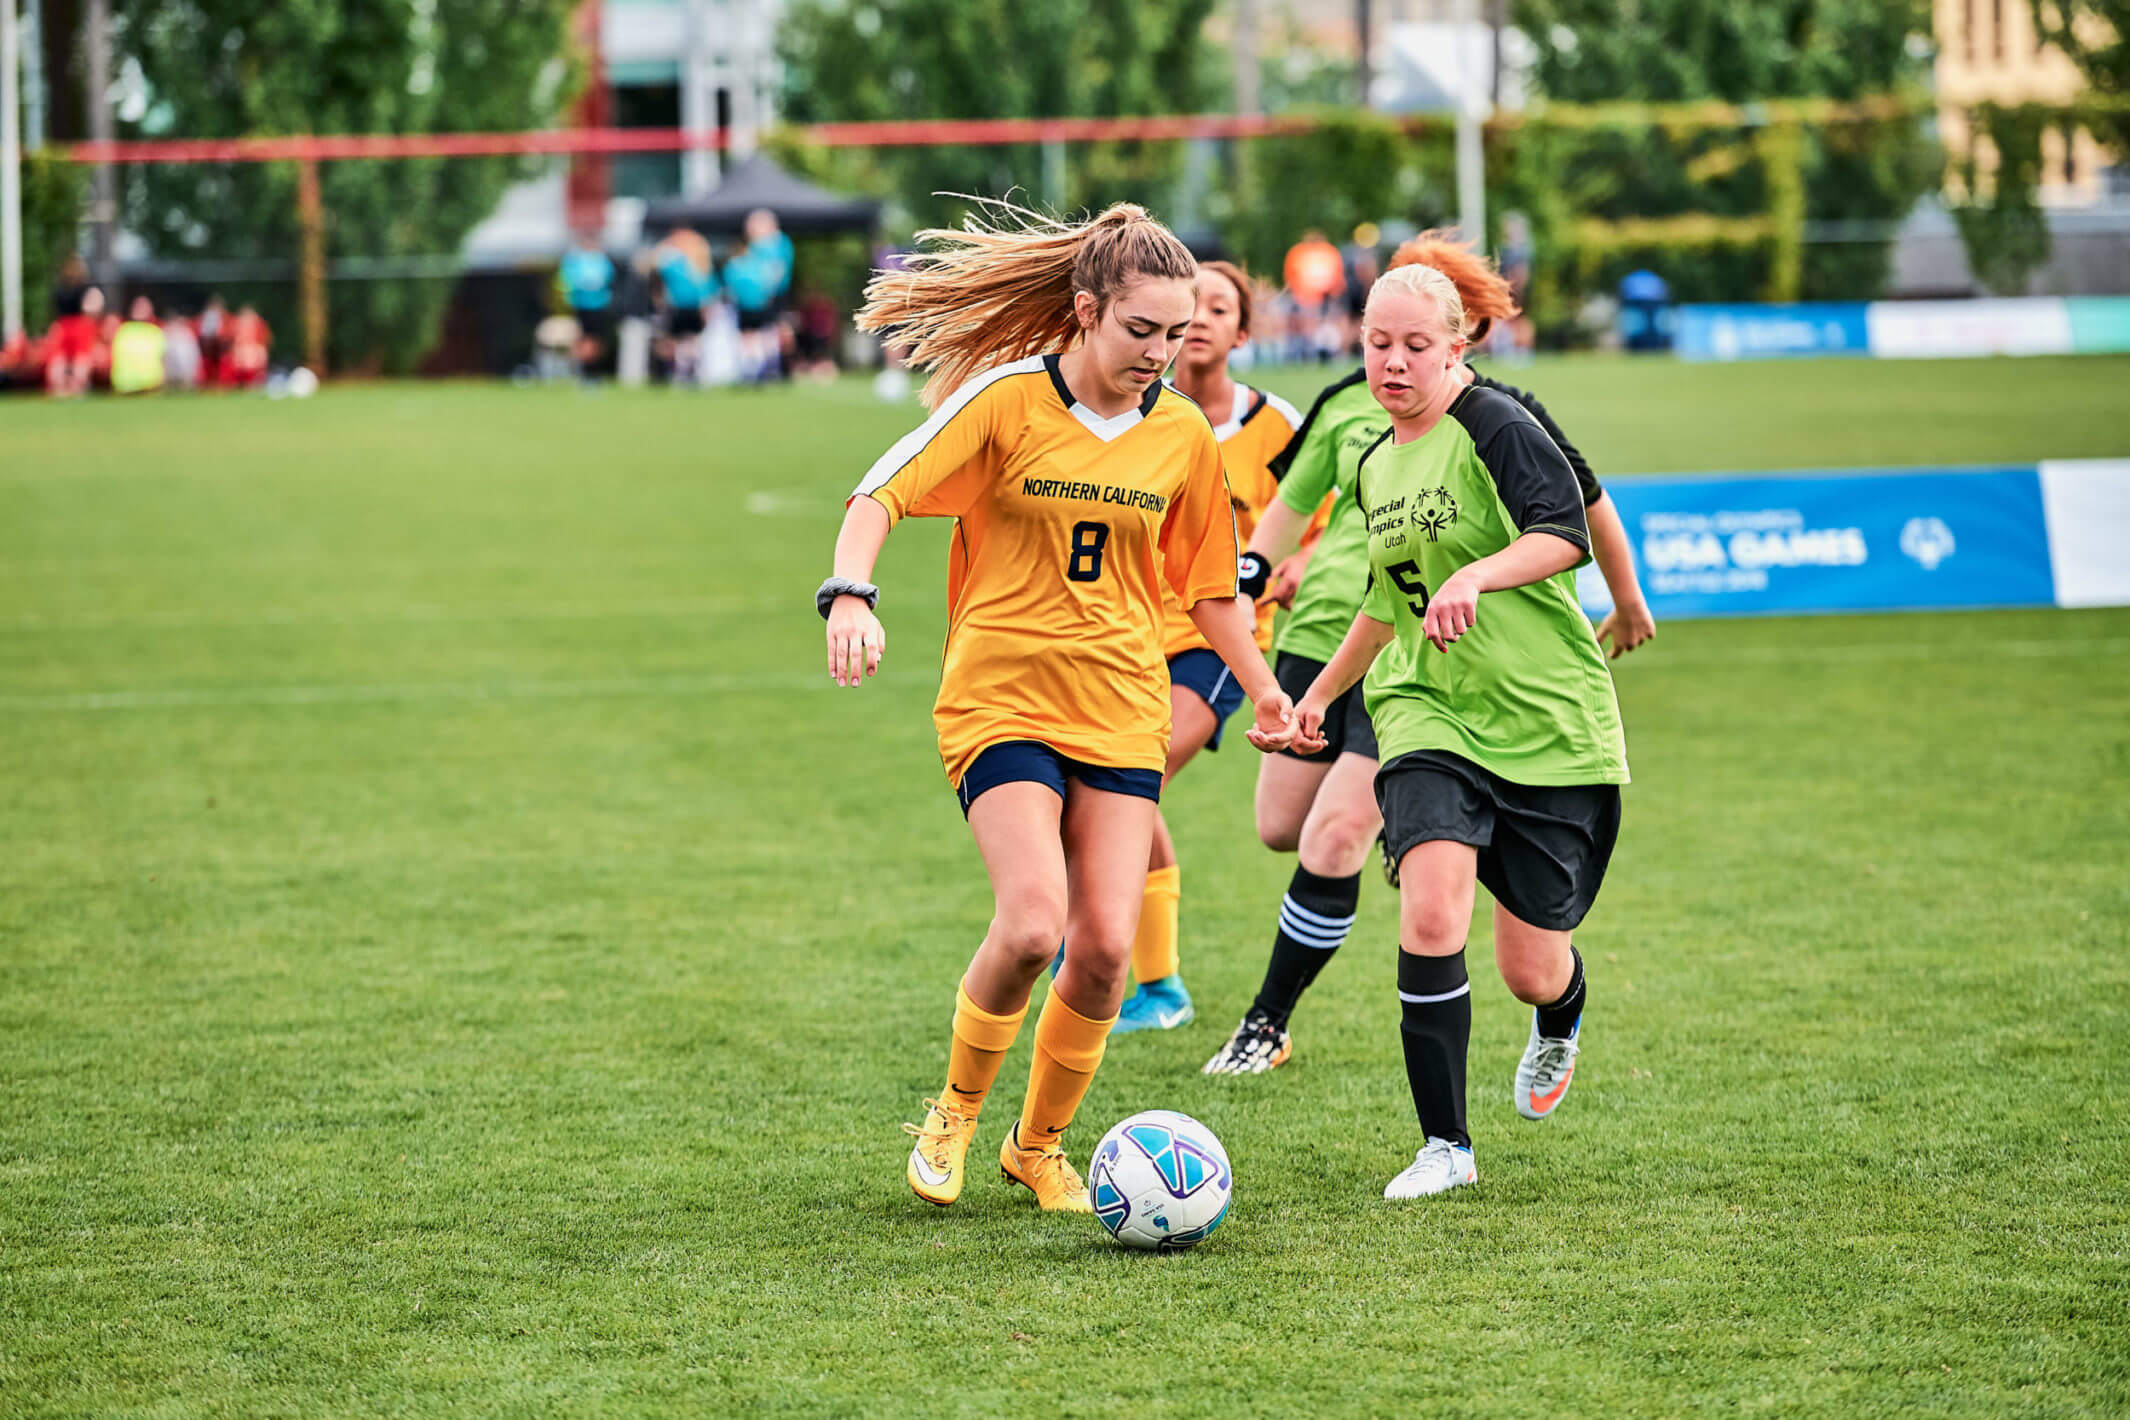 Two female students from opposing soccer teams fighting for the ball.